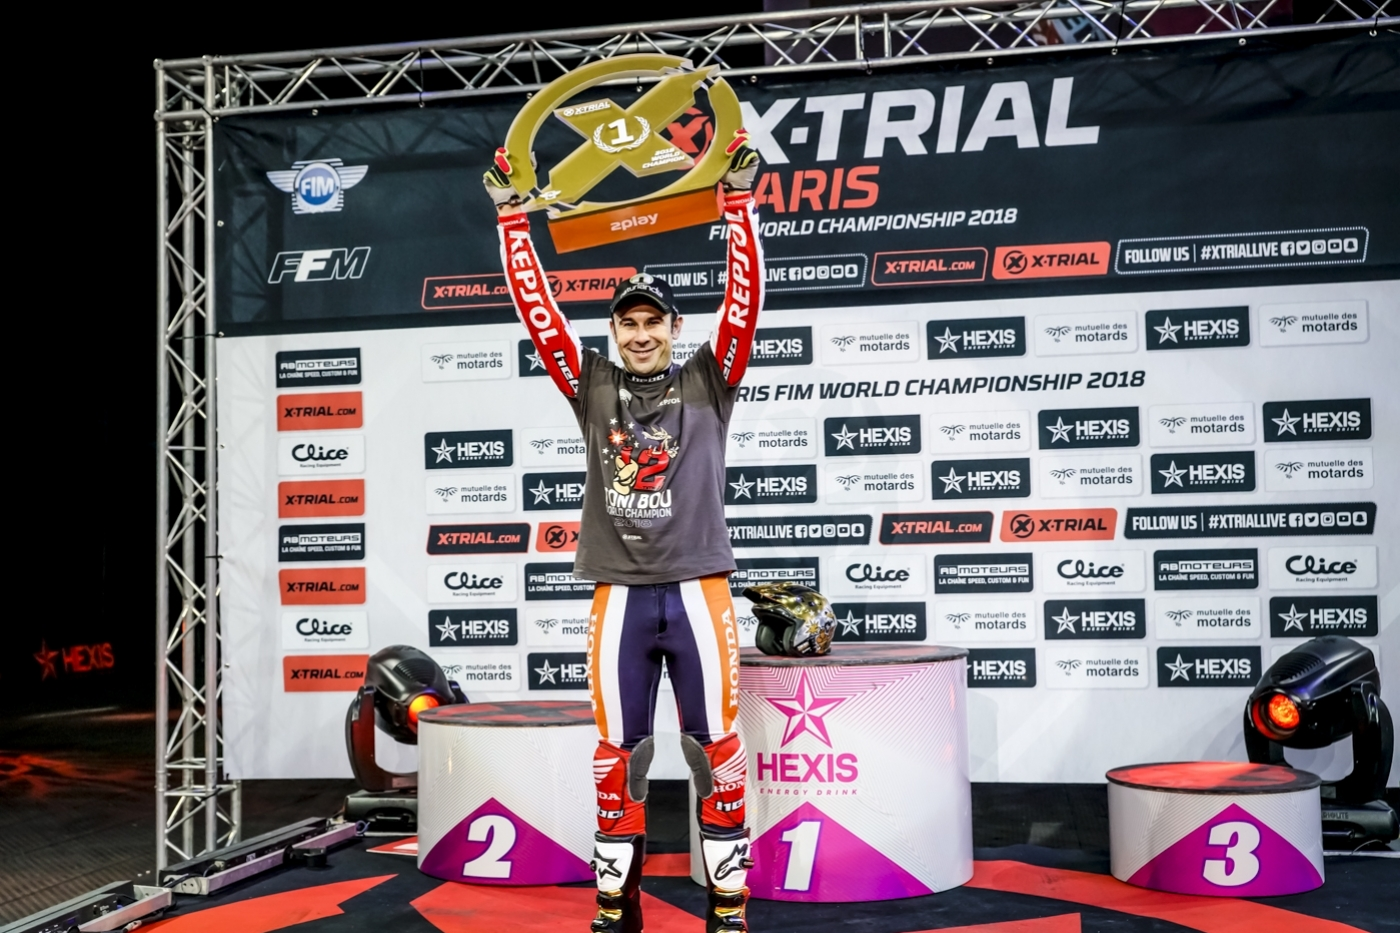 Toni Bou: The road to a twelfth title